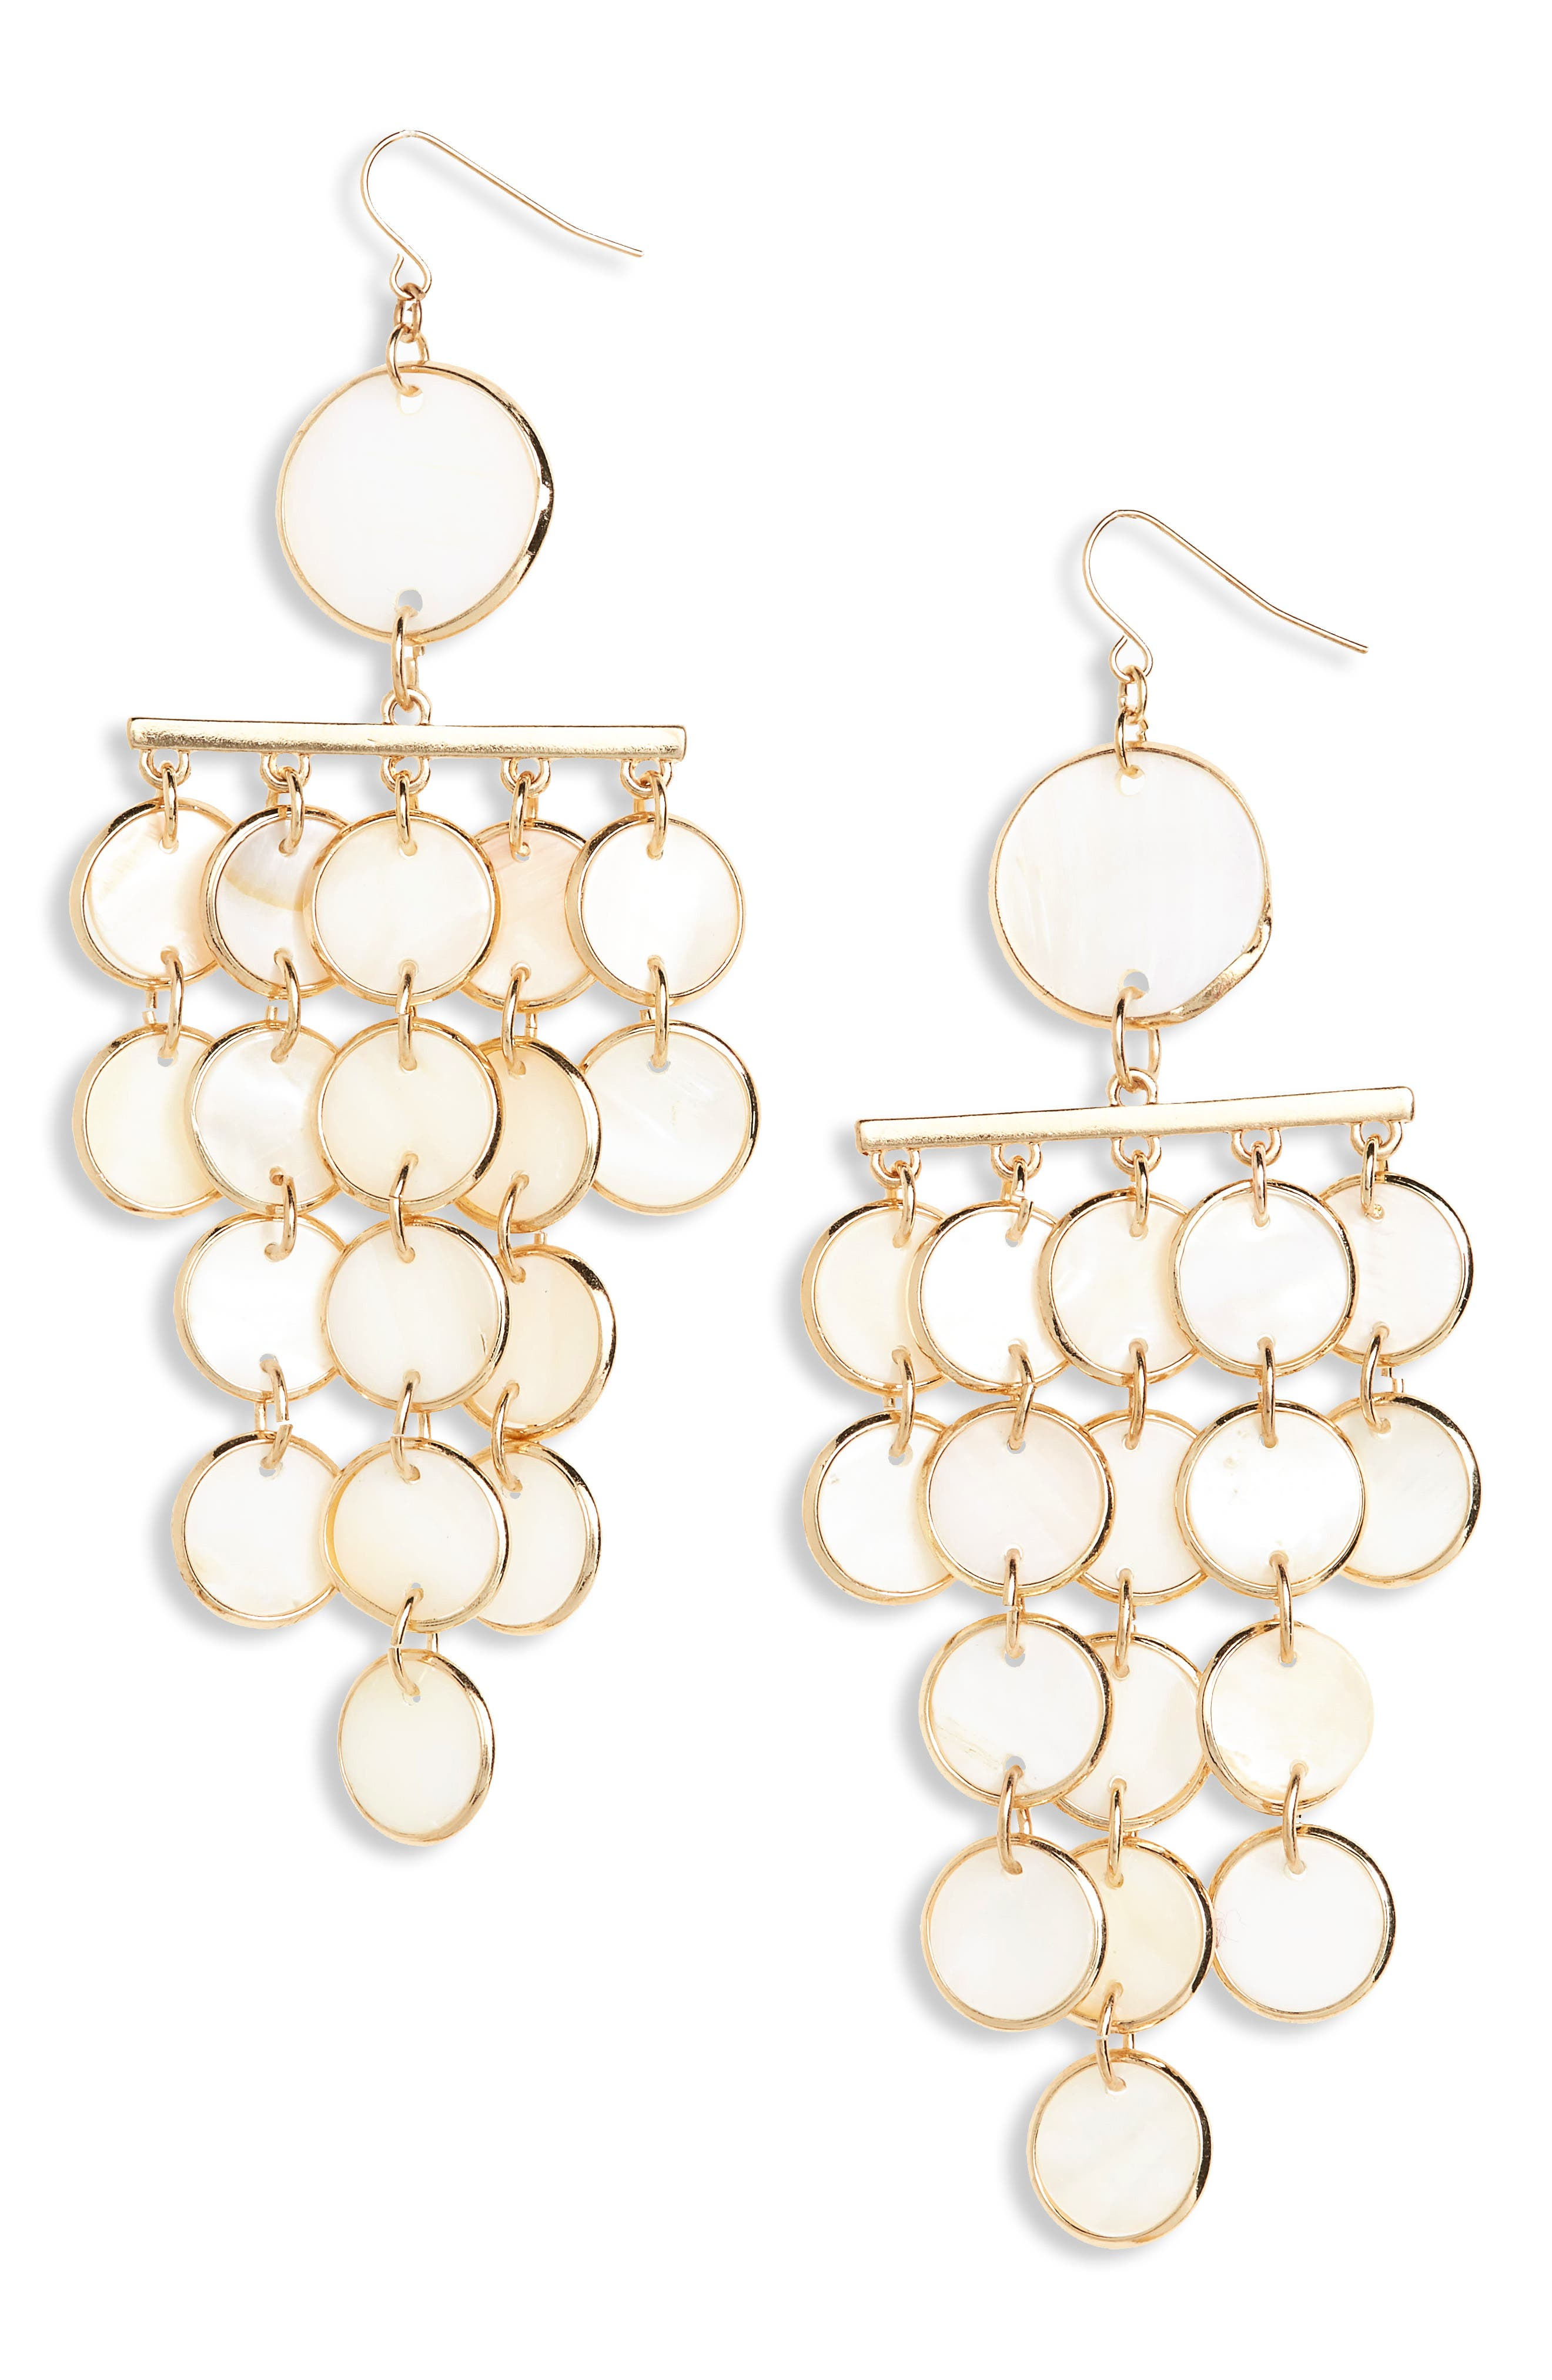 Mother of Pearl Chandelier Earrings,                             Main thumbnail 1, color,                             Gold/ Shell